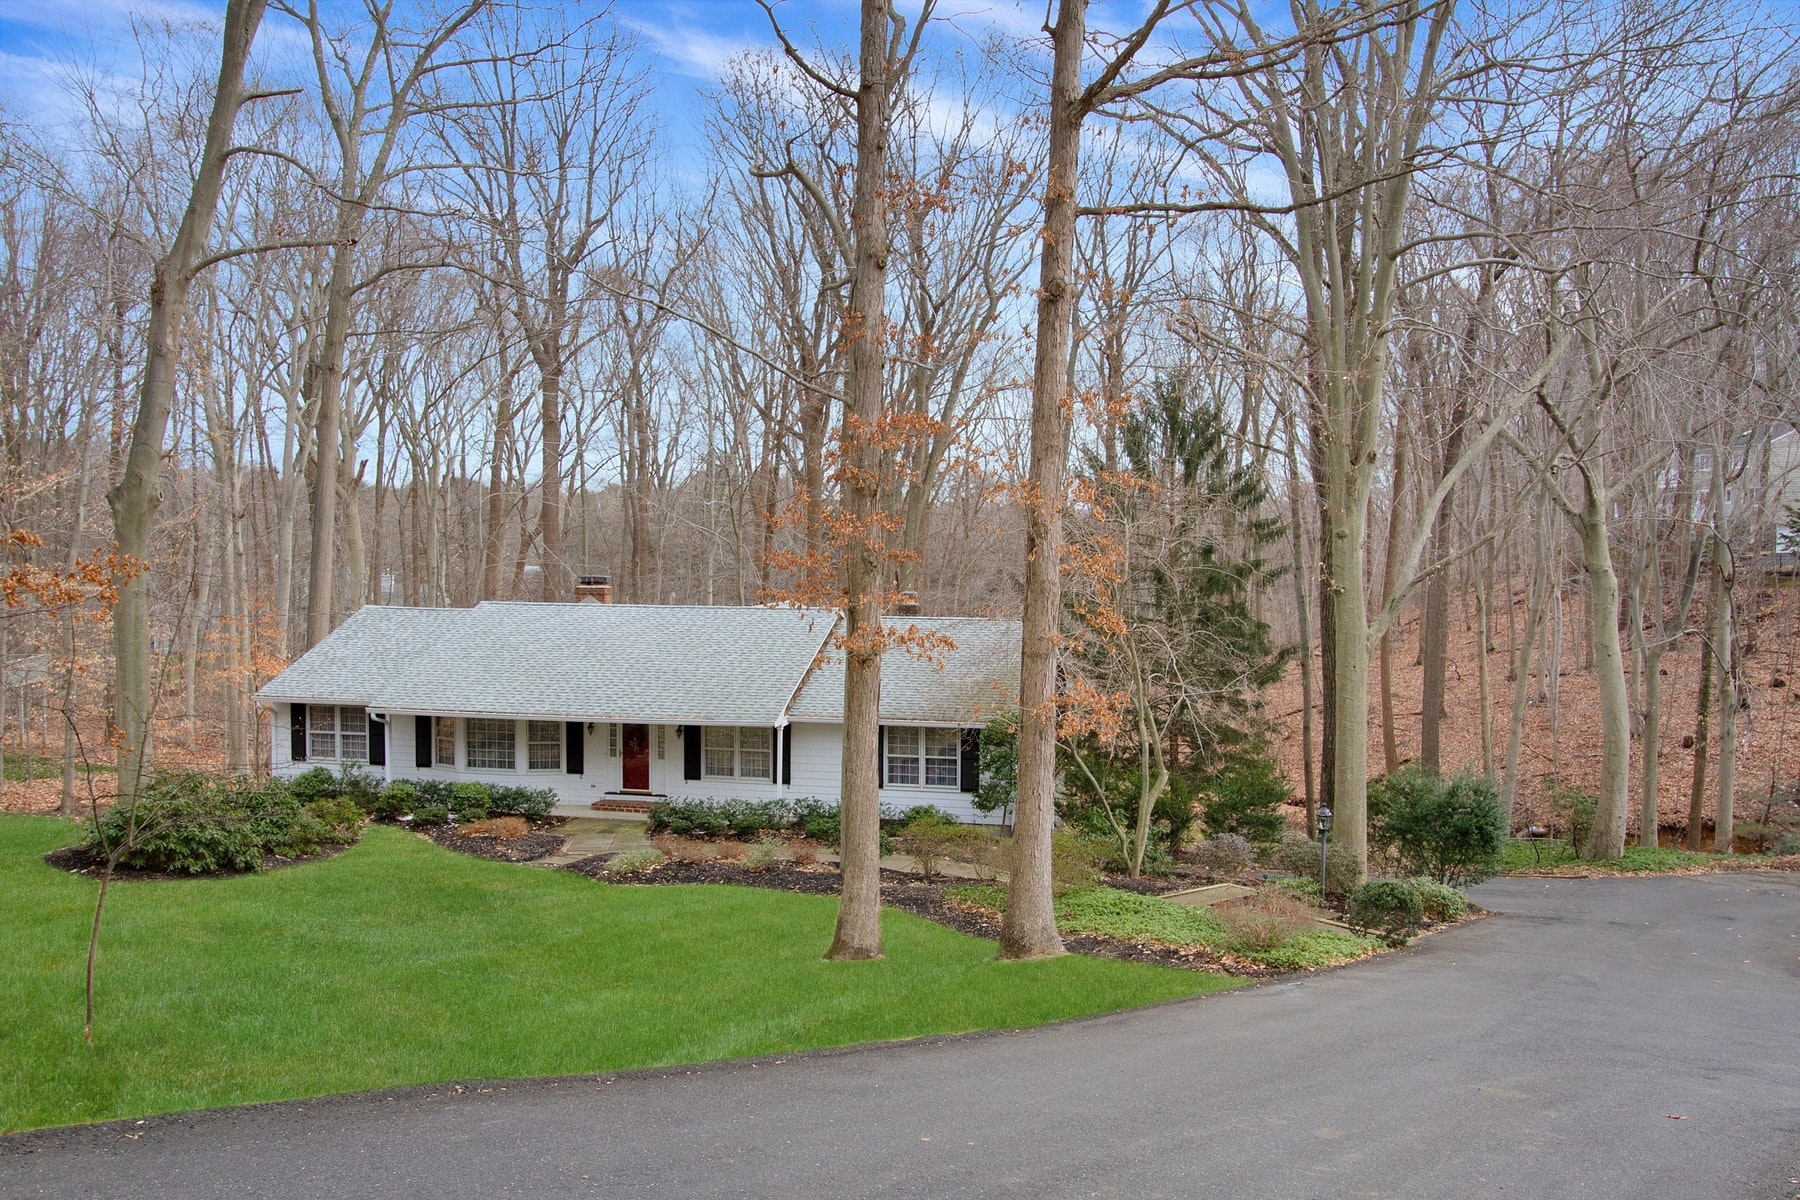 Single Family Home for Sale at Sprawling Raised Ranch in Oak Hill 119 Deepdale Dr, Middletown, New Jersey 07748 United States